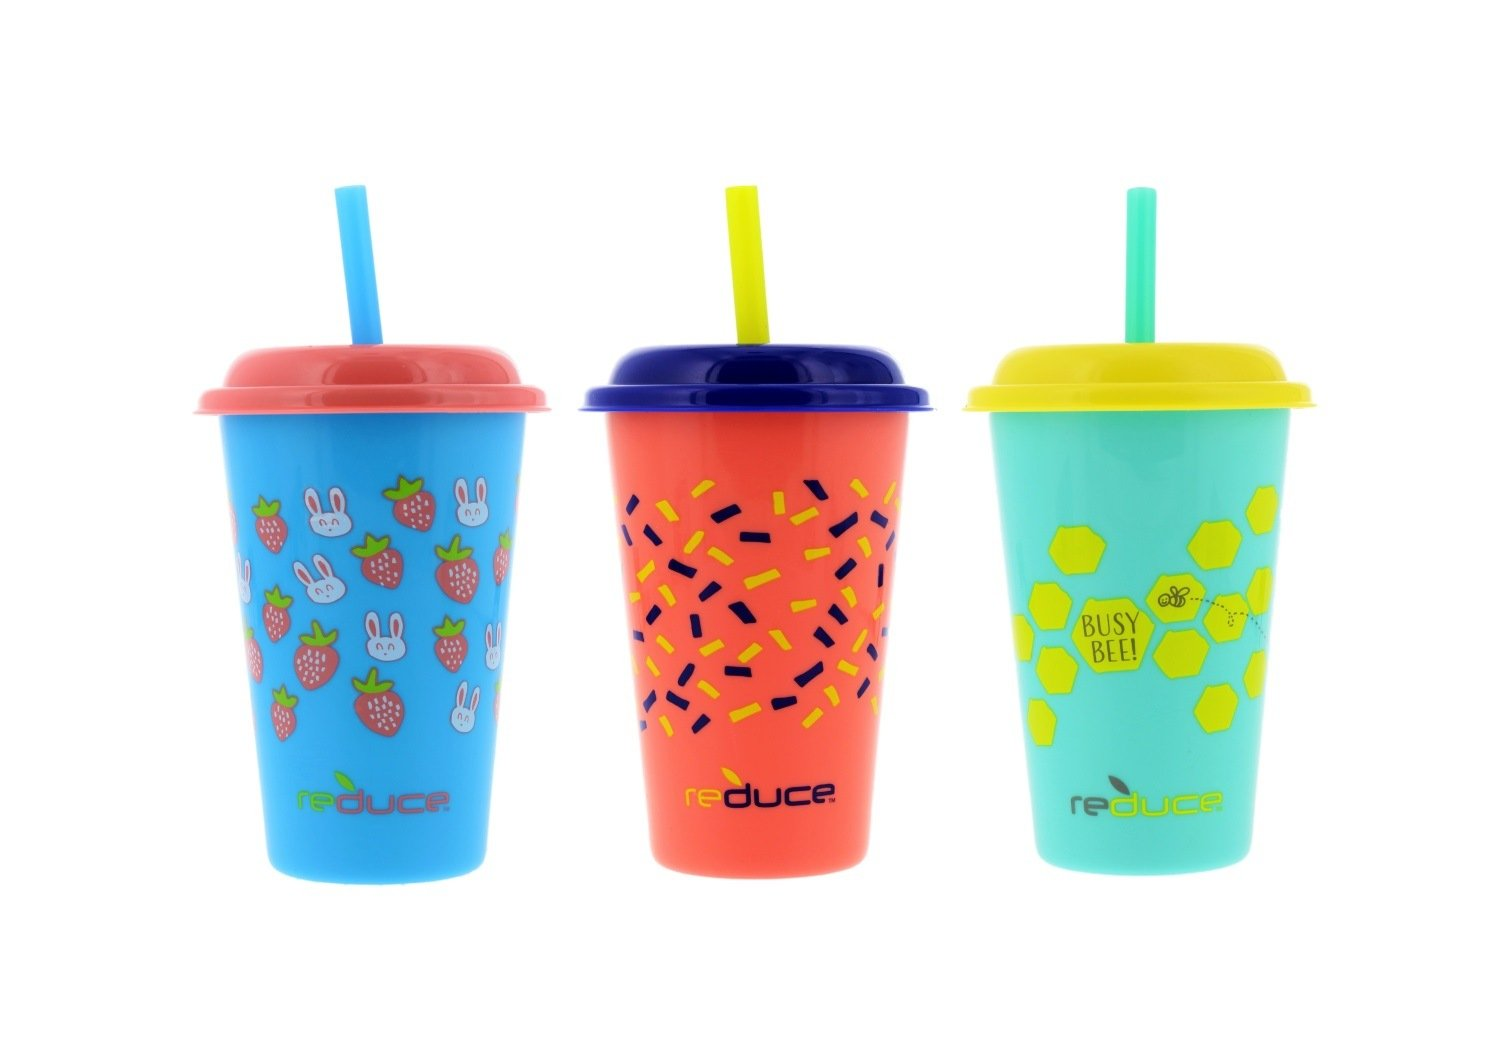 Reduce GoGo's 12oz Straw Cups for Kids, 3 Pack Cutiepie - Kids Cups with Lids and Straws are the Perfect Toddler Tumbler for Home and Travel - BPA Free, Dishwasher Safe, 3 Fun Designs, Fits Cupholders